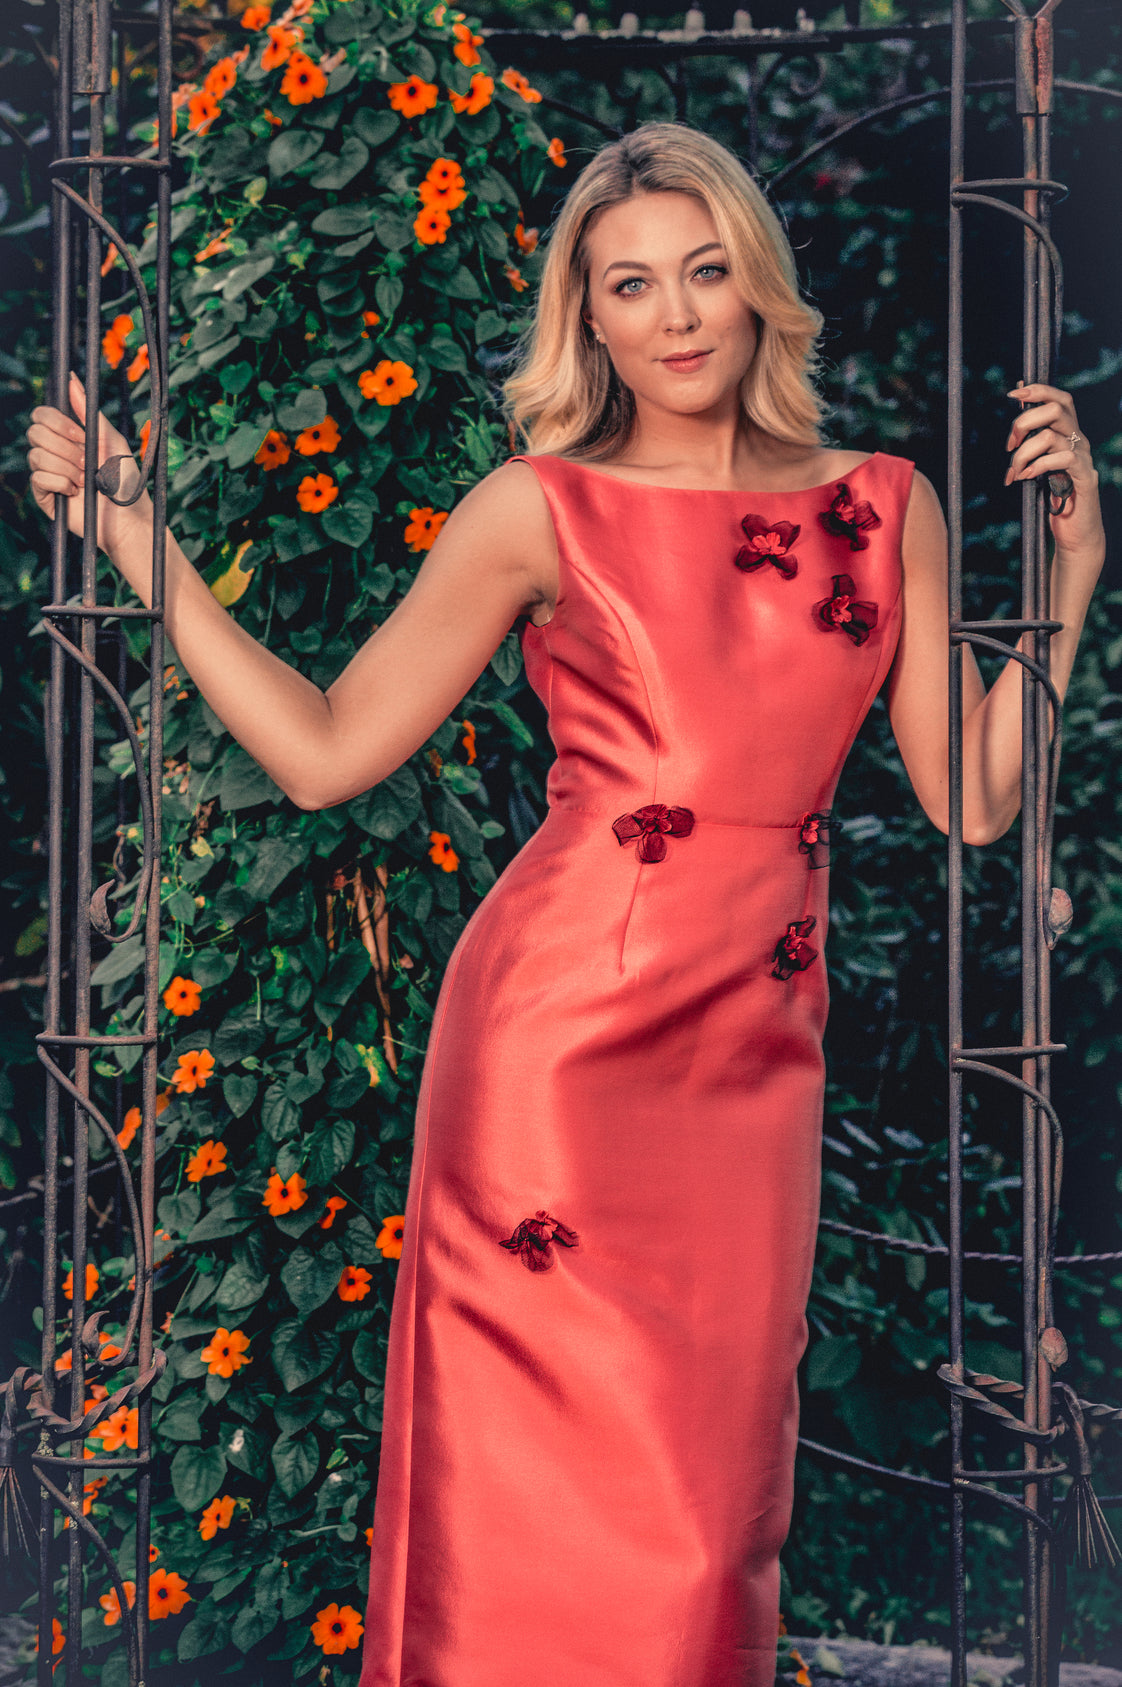 anna nieman designer dress Boston. A dress in vibrant salmon, with a column silhouette and appliquéd with delicate and dramatic black flowers. A favorite of many!